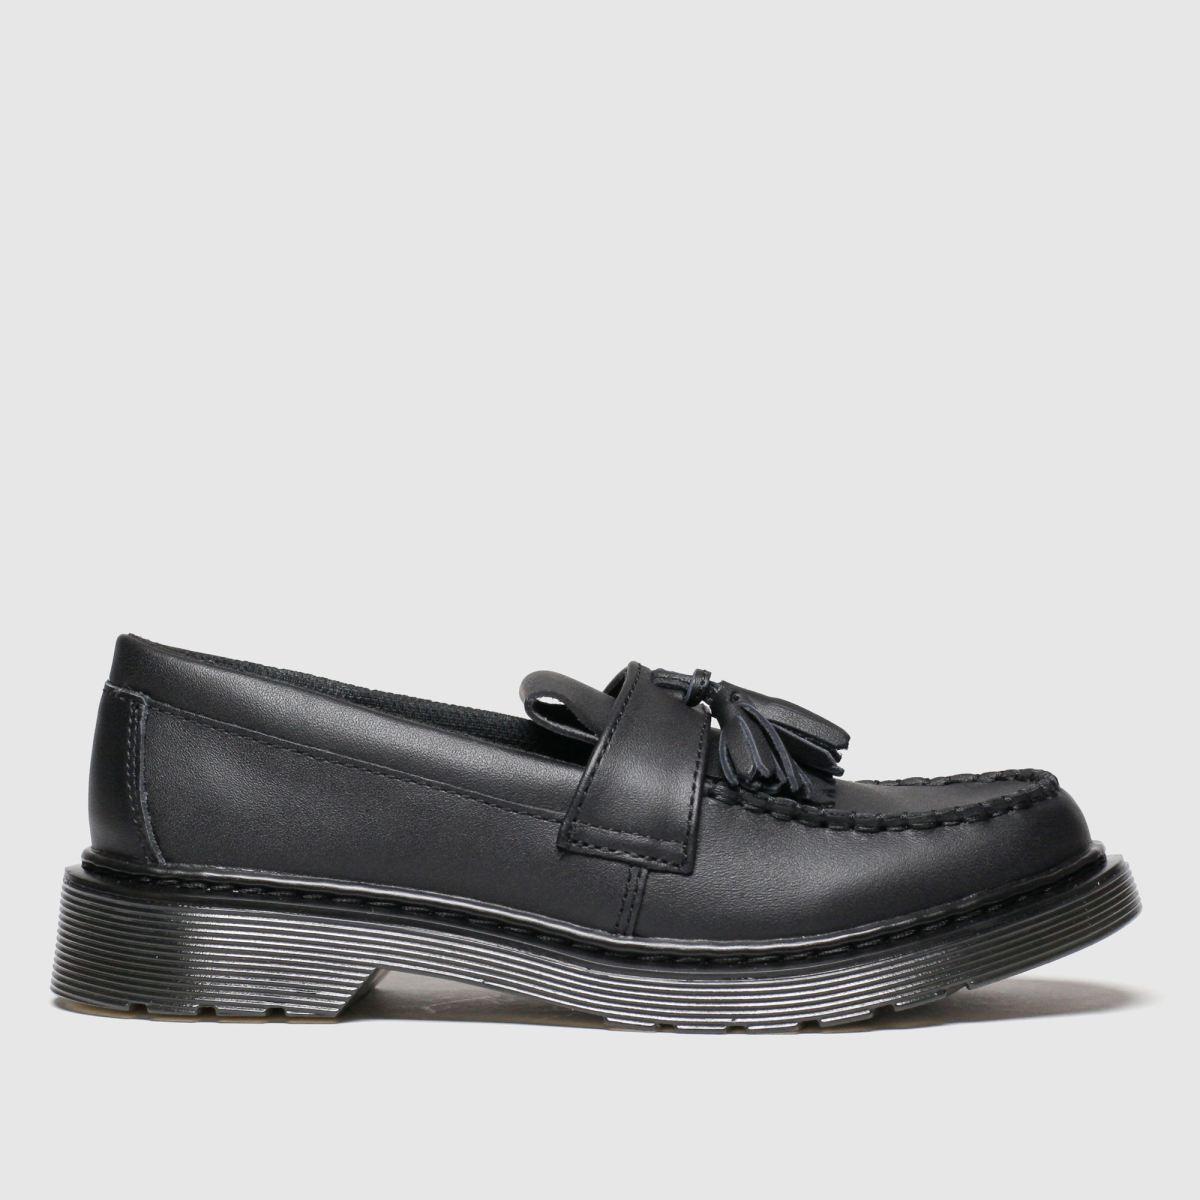 Dr Martens Black Adrian Shoes Youth